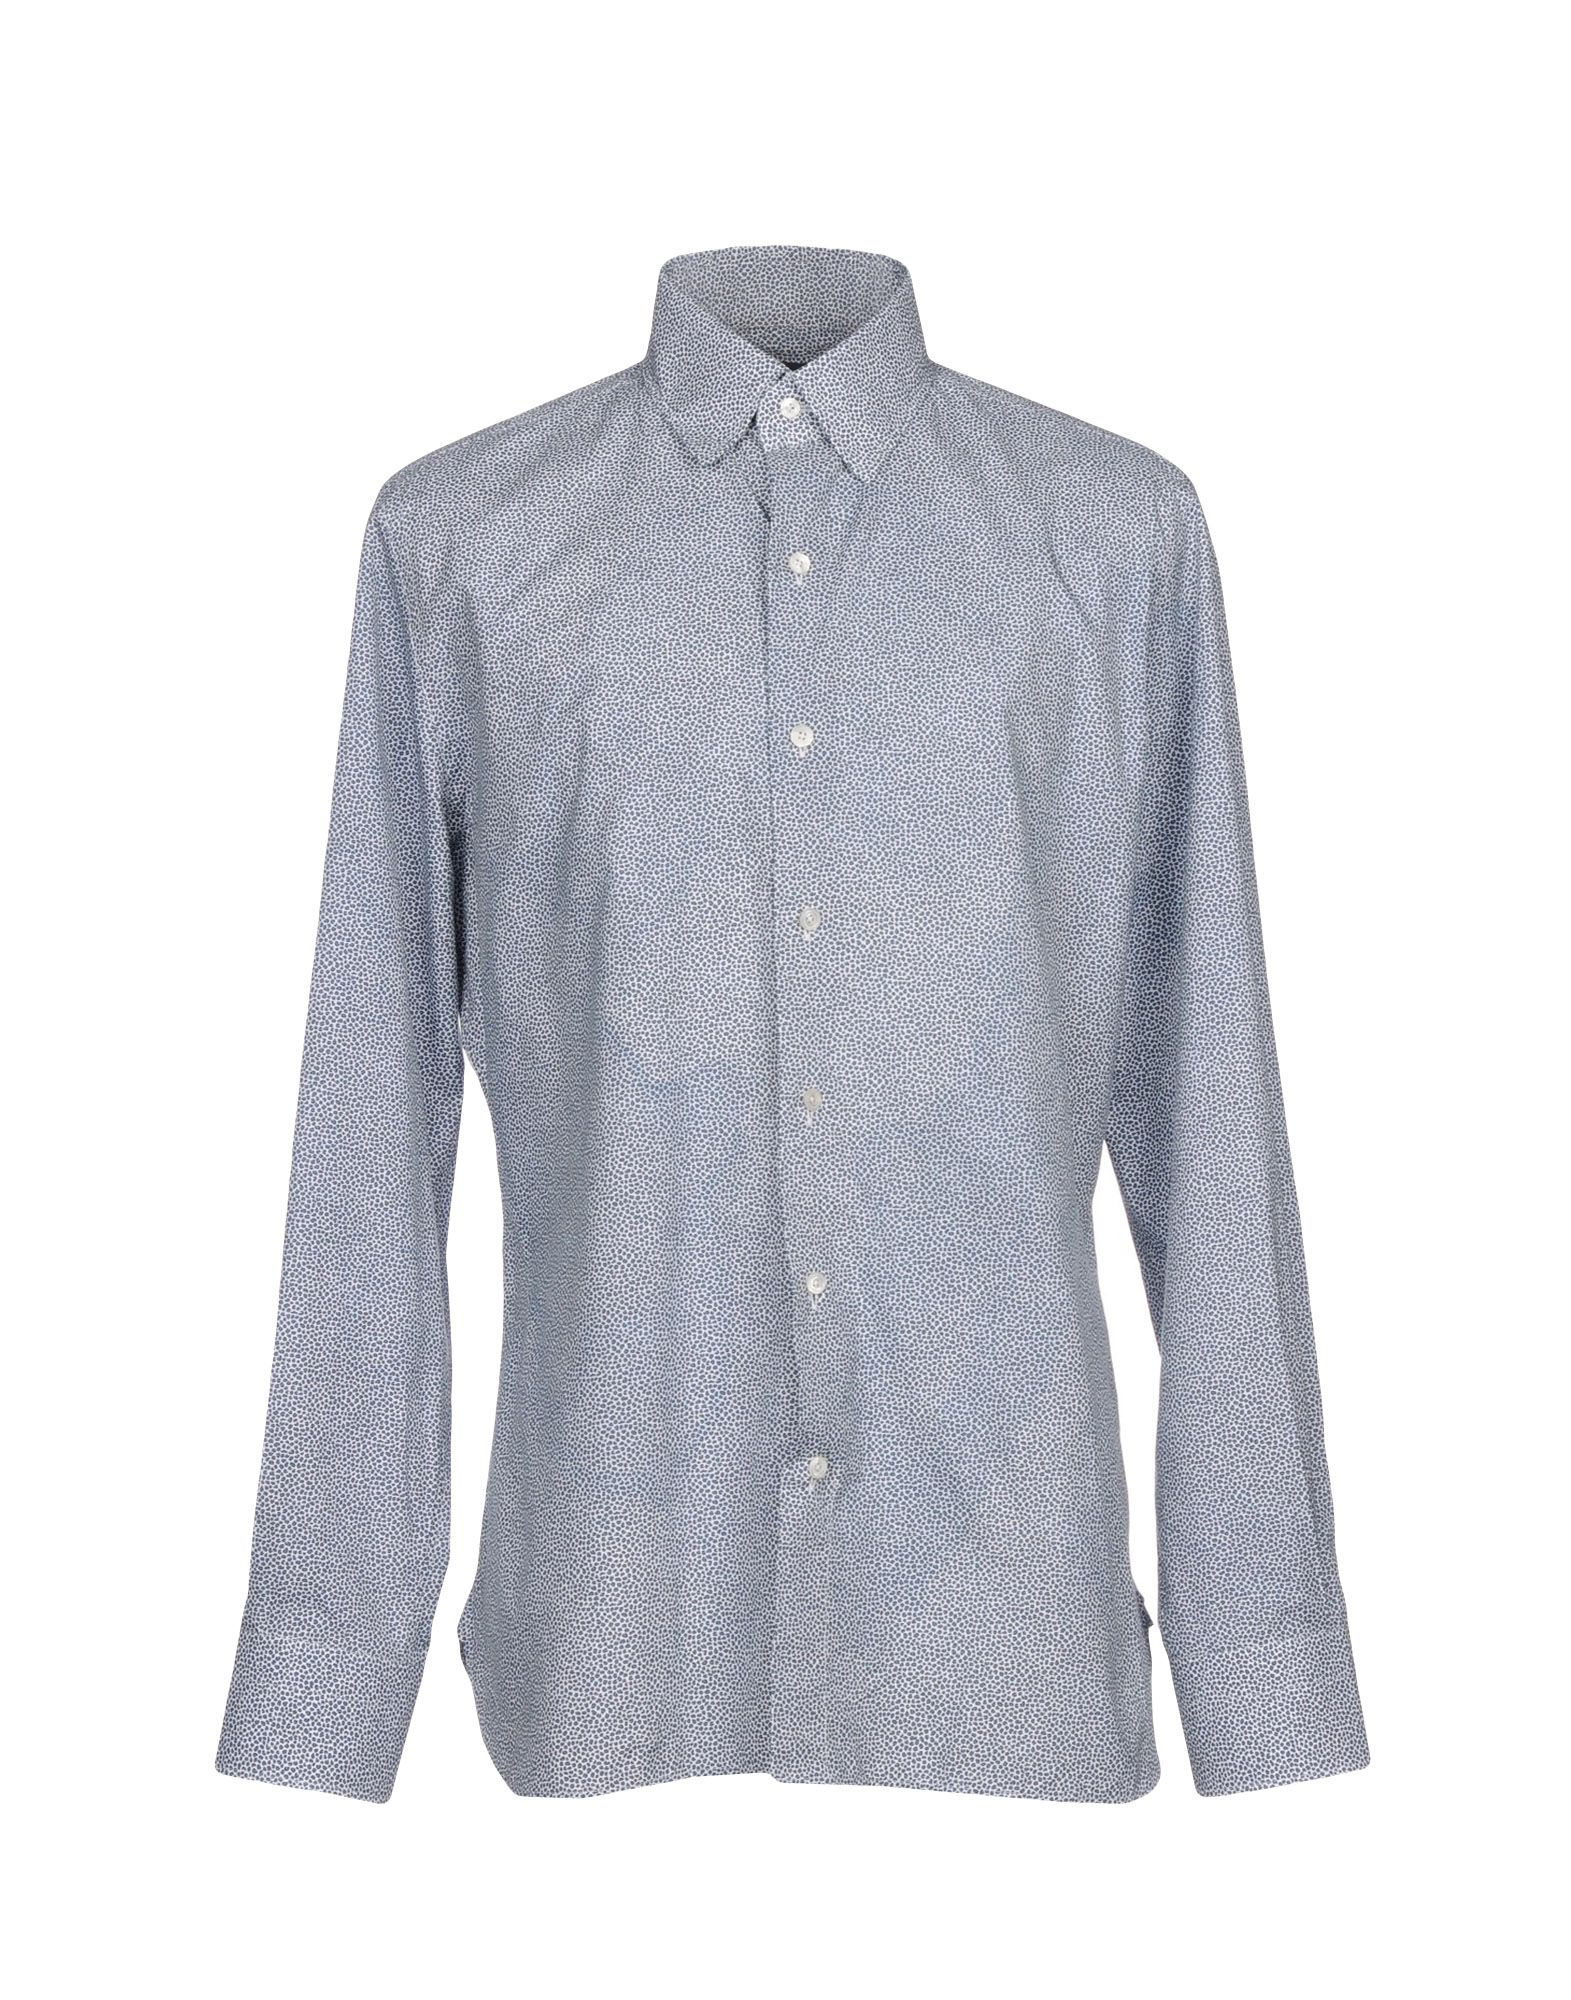 Camicia Fantasia Tom Ford Uomo - Acquista online su